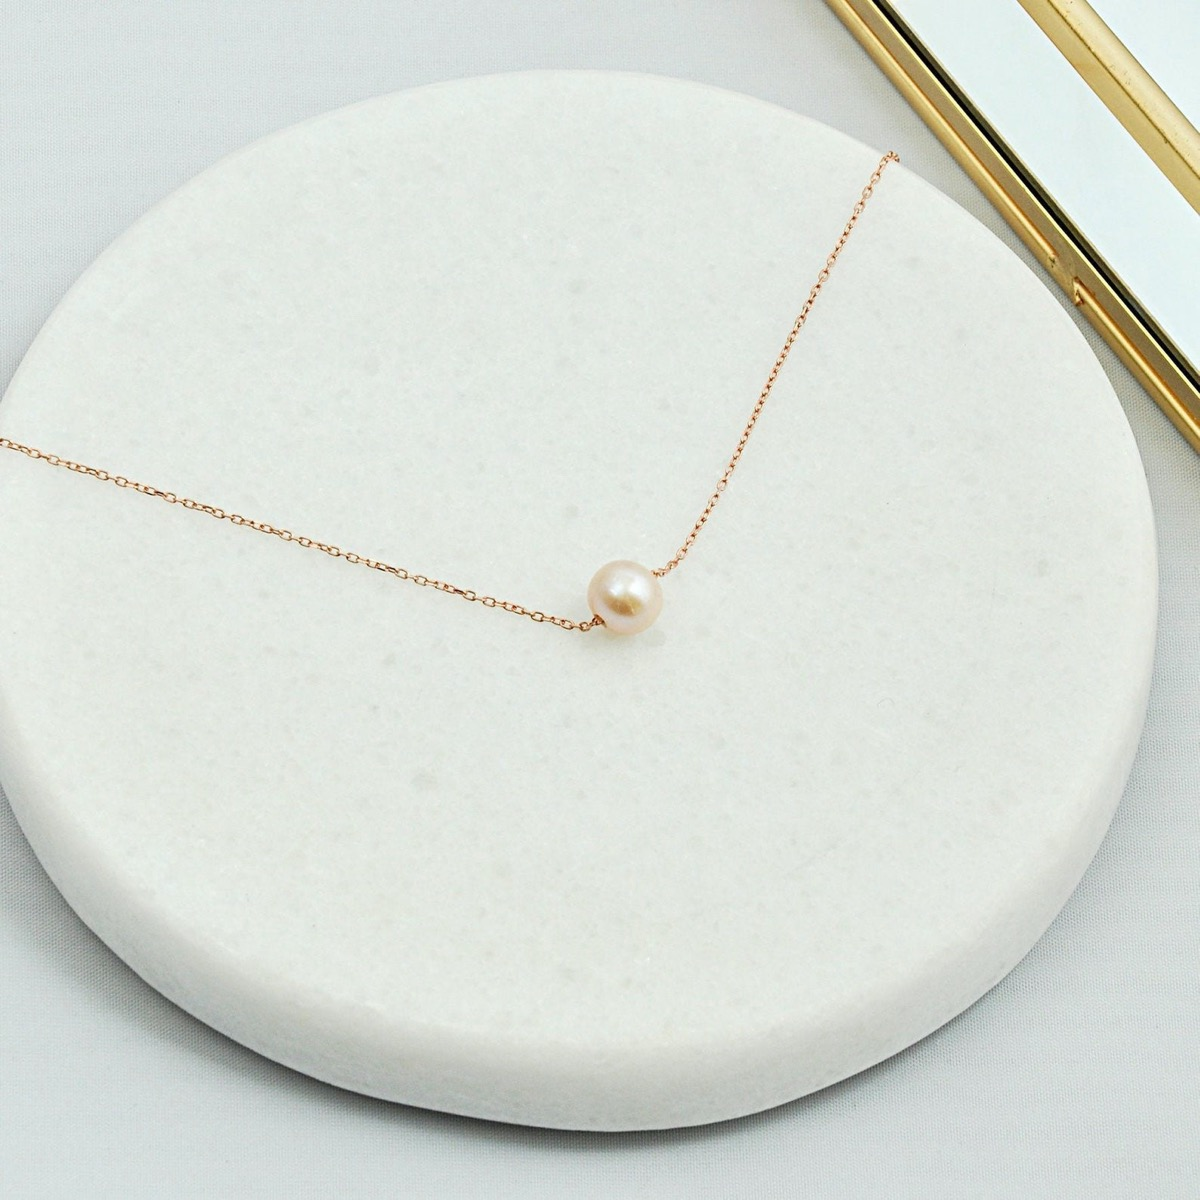 single pearl on a chain